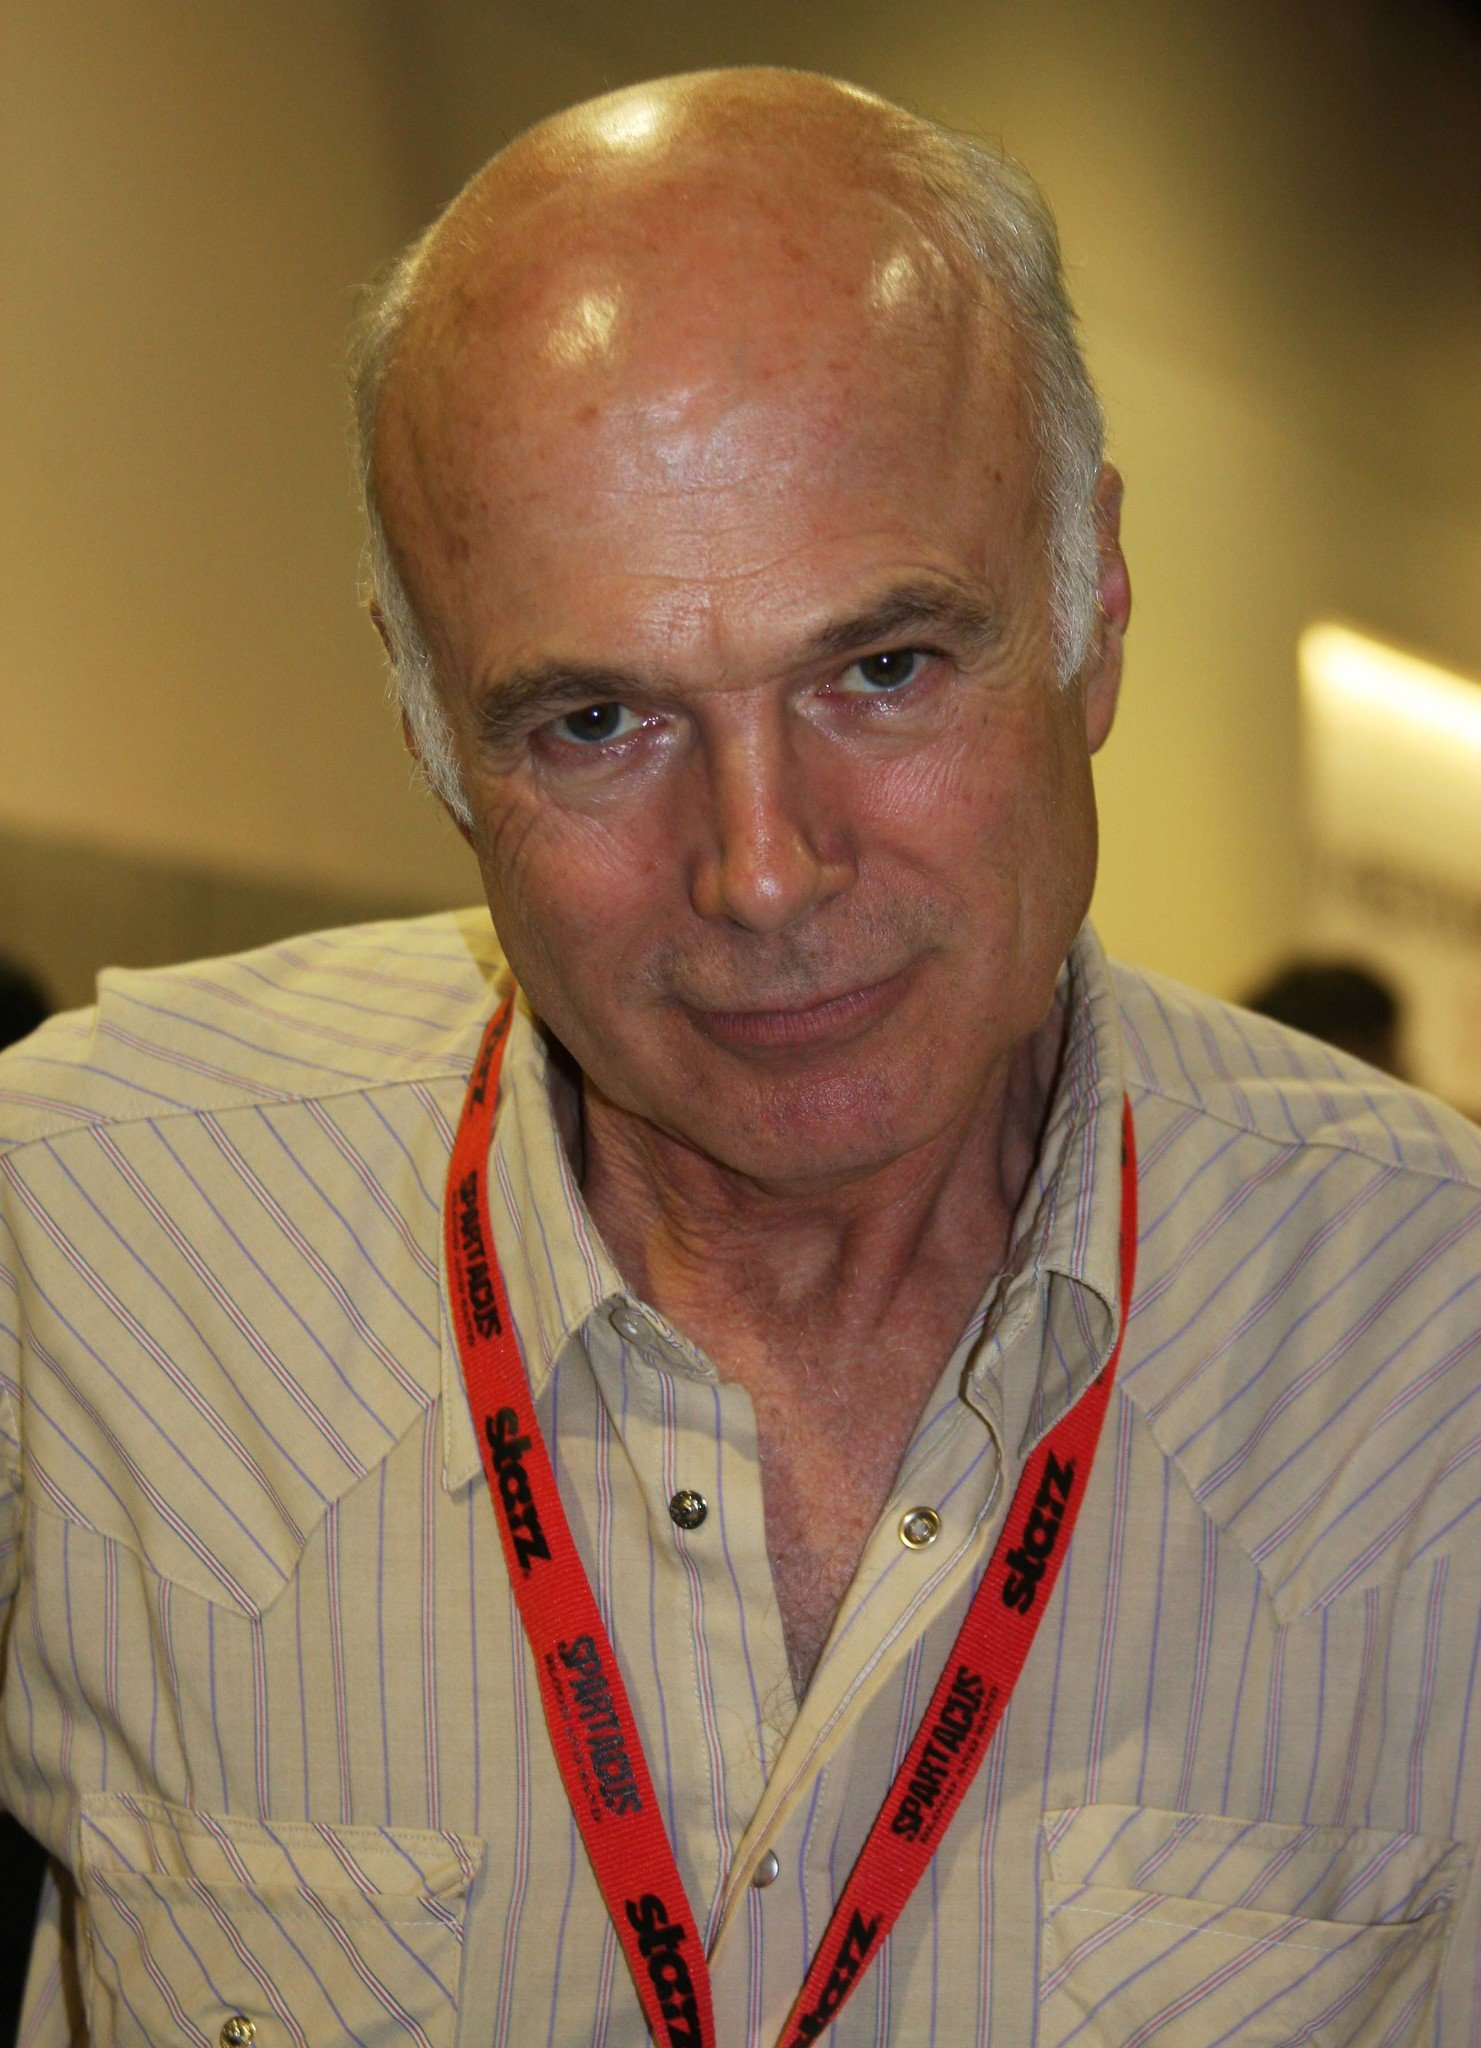 """Michael Hogan who plays ColonelSaul Tigh on """"Battlestar Galactica"""" photographed on July 26, 2009 